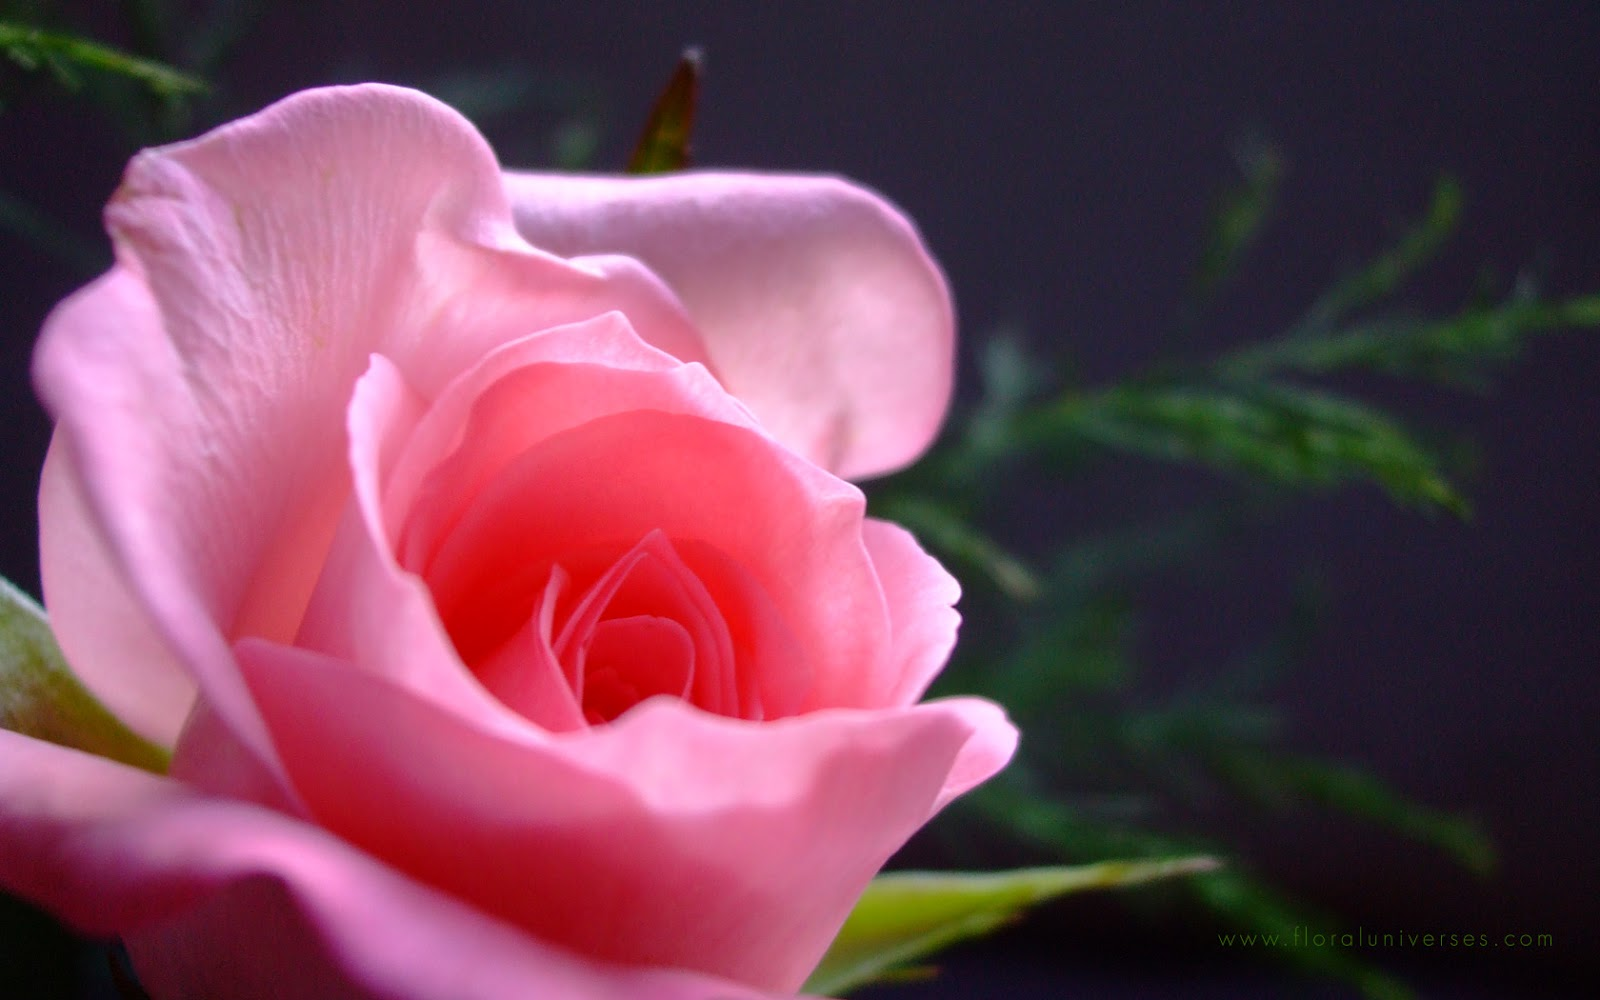 Natural HD Wallpaper Pink Rose Meaning